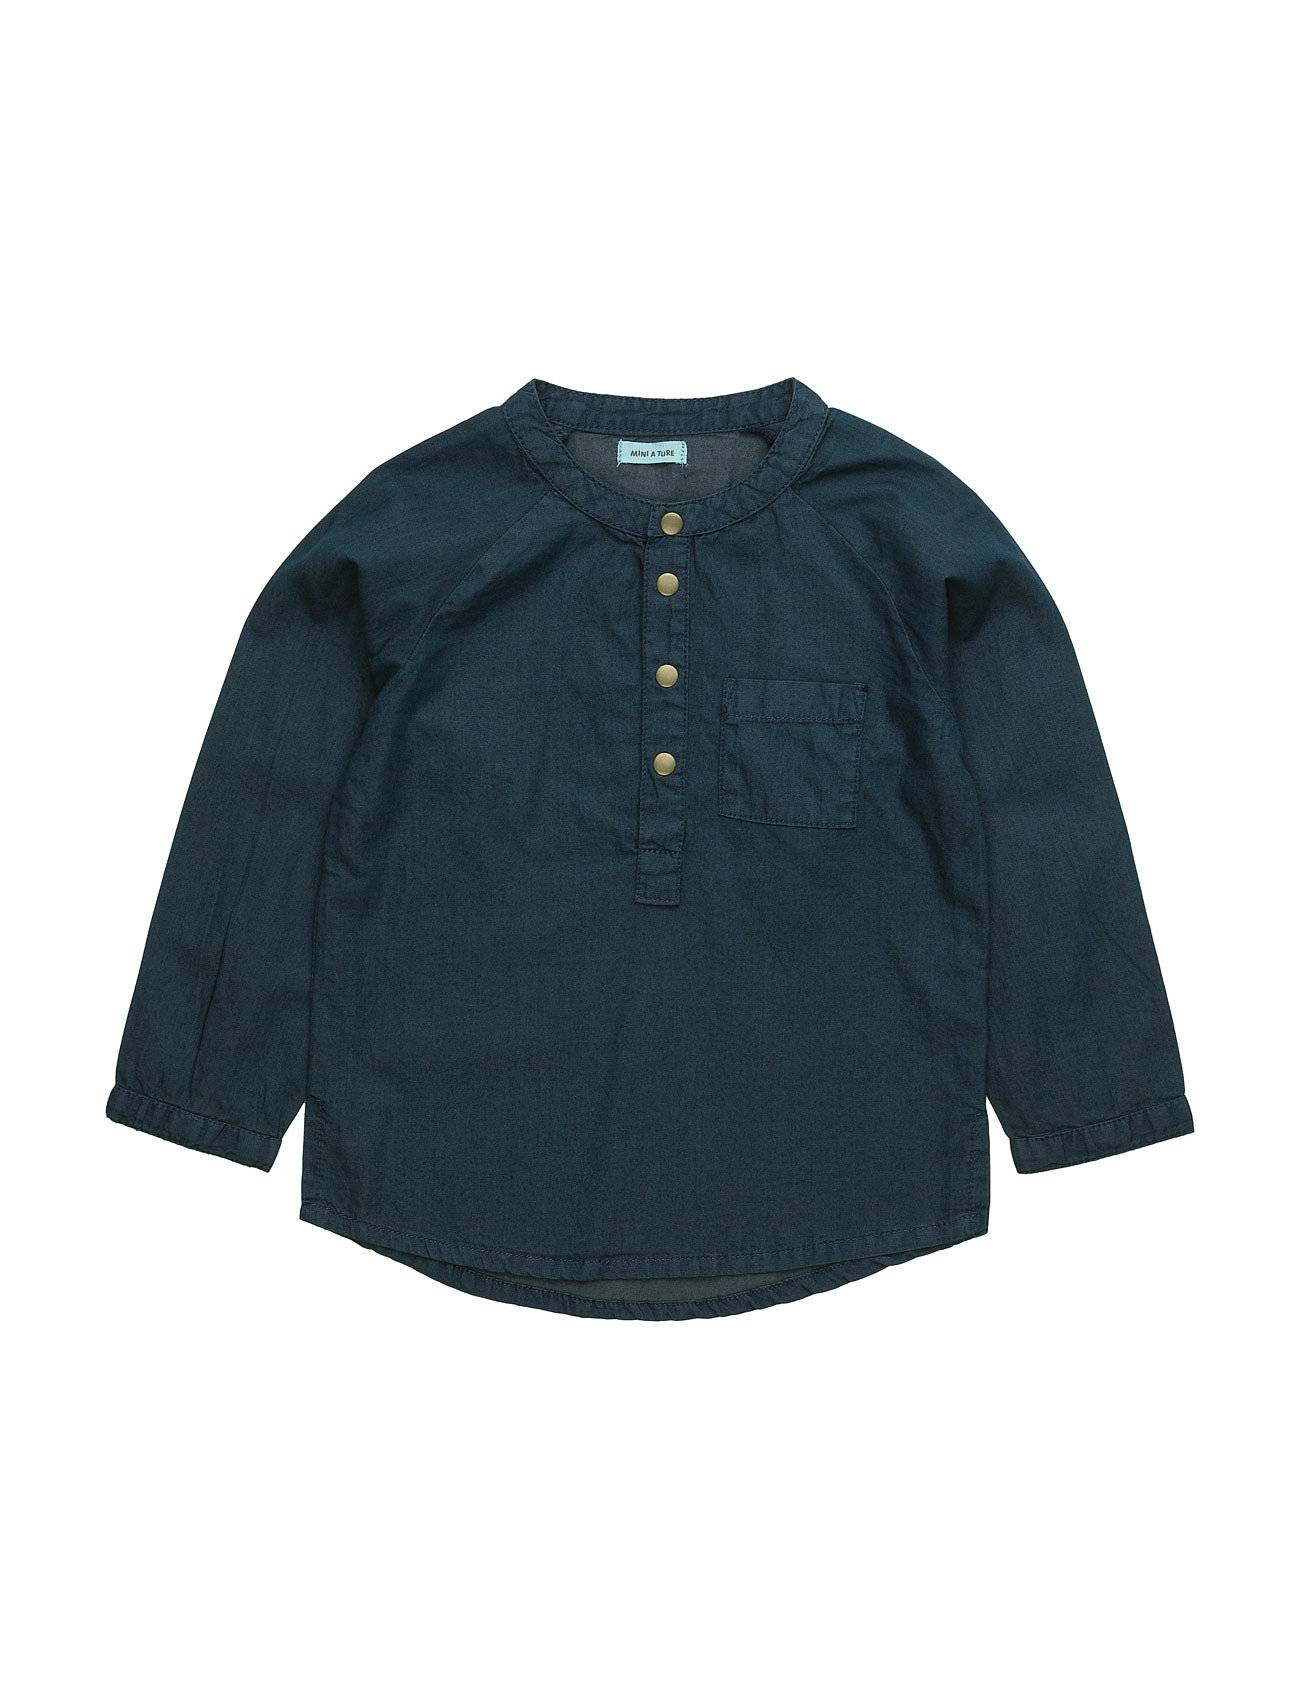 Mini A Ture Alton, Bm Shirt Ls